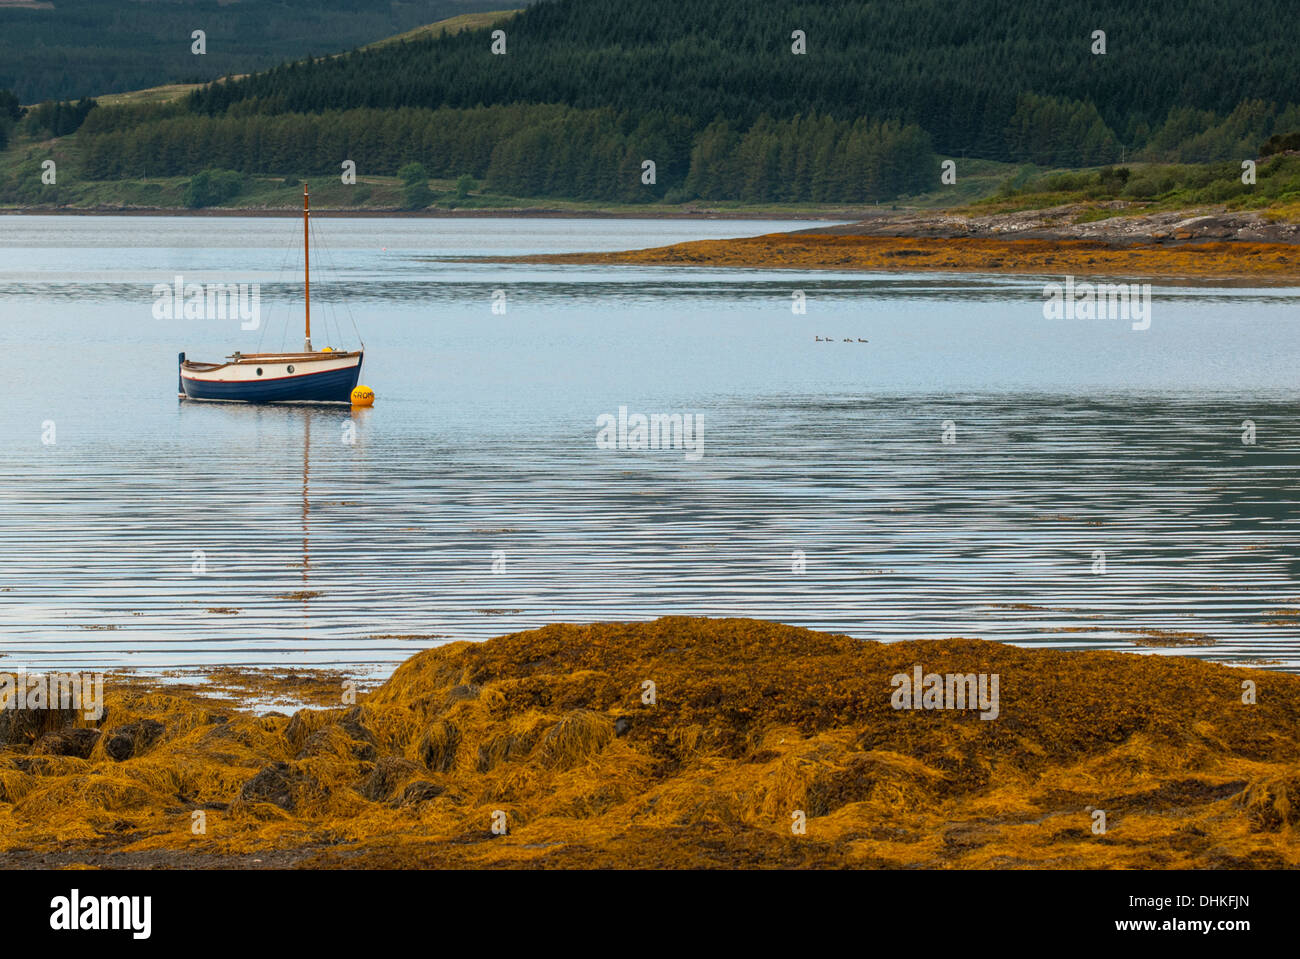 Blue yacht in bay of seaweed with forest behind. - Stock Image